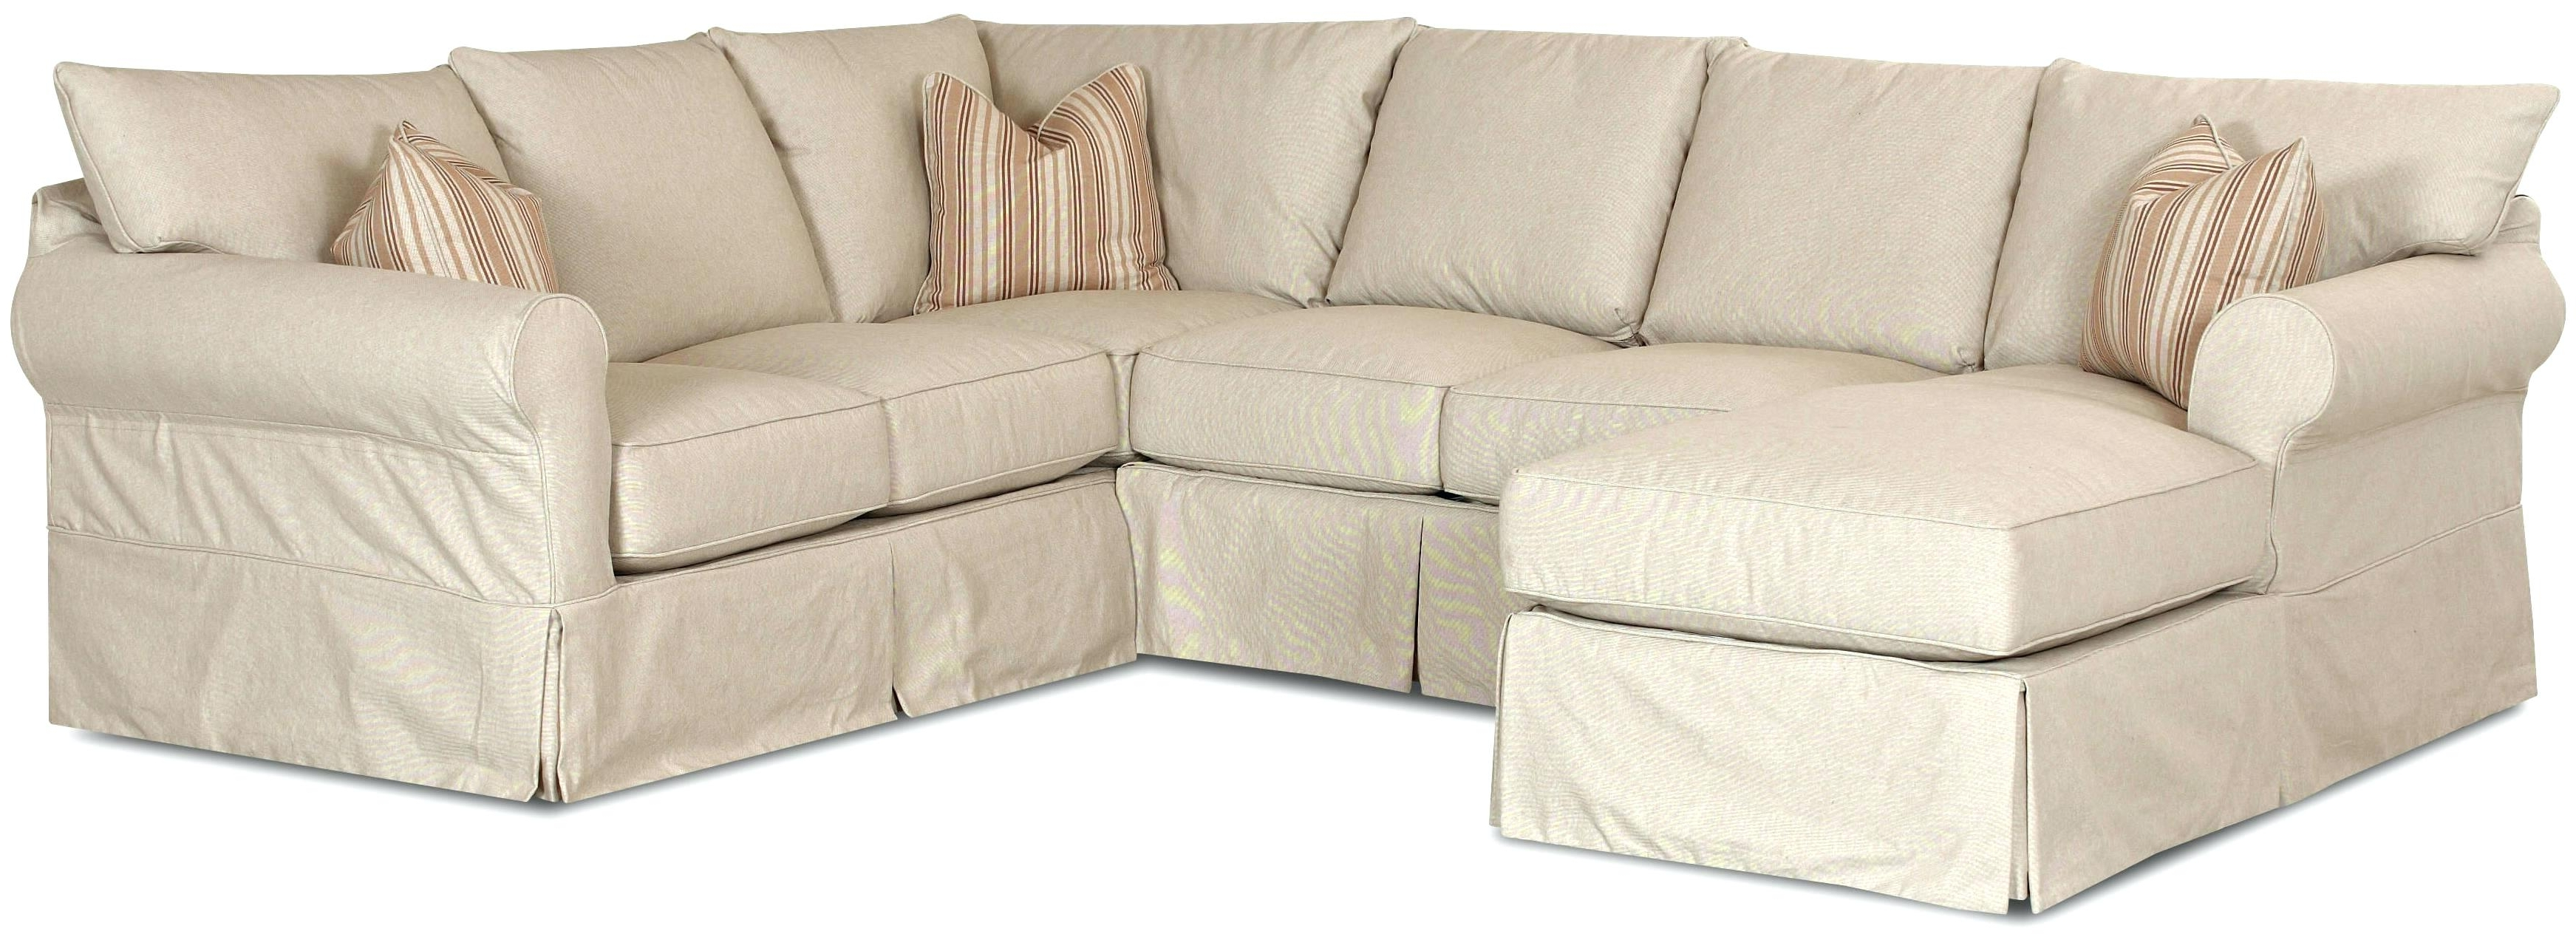 Made In North Carolina Sectional Sofas With Best And Newest Slipcovers: Slipcover Sofas North Carolina (View 19 of 20)